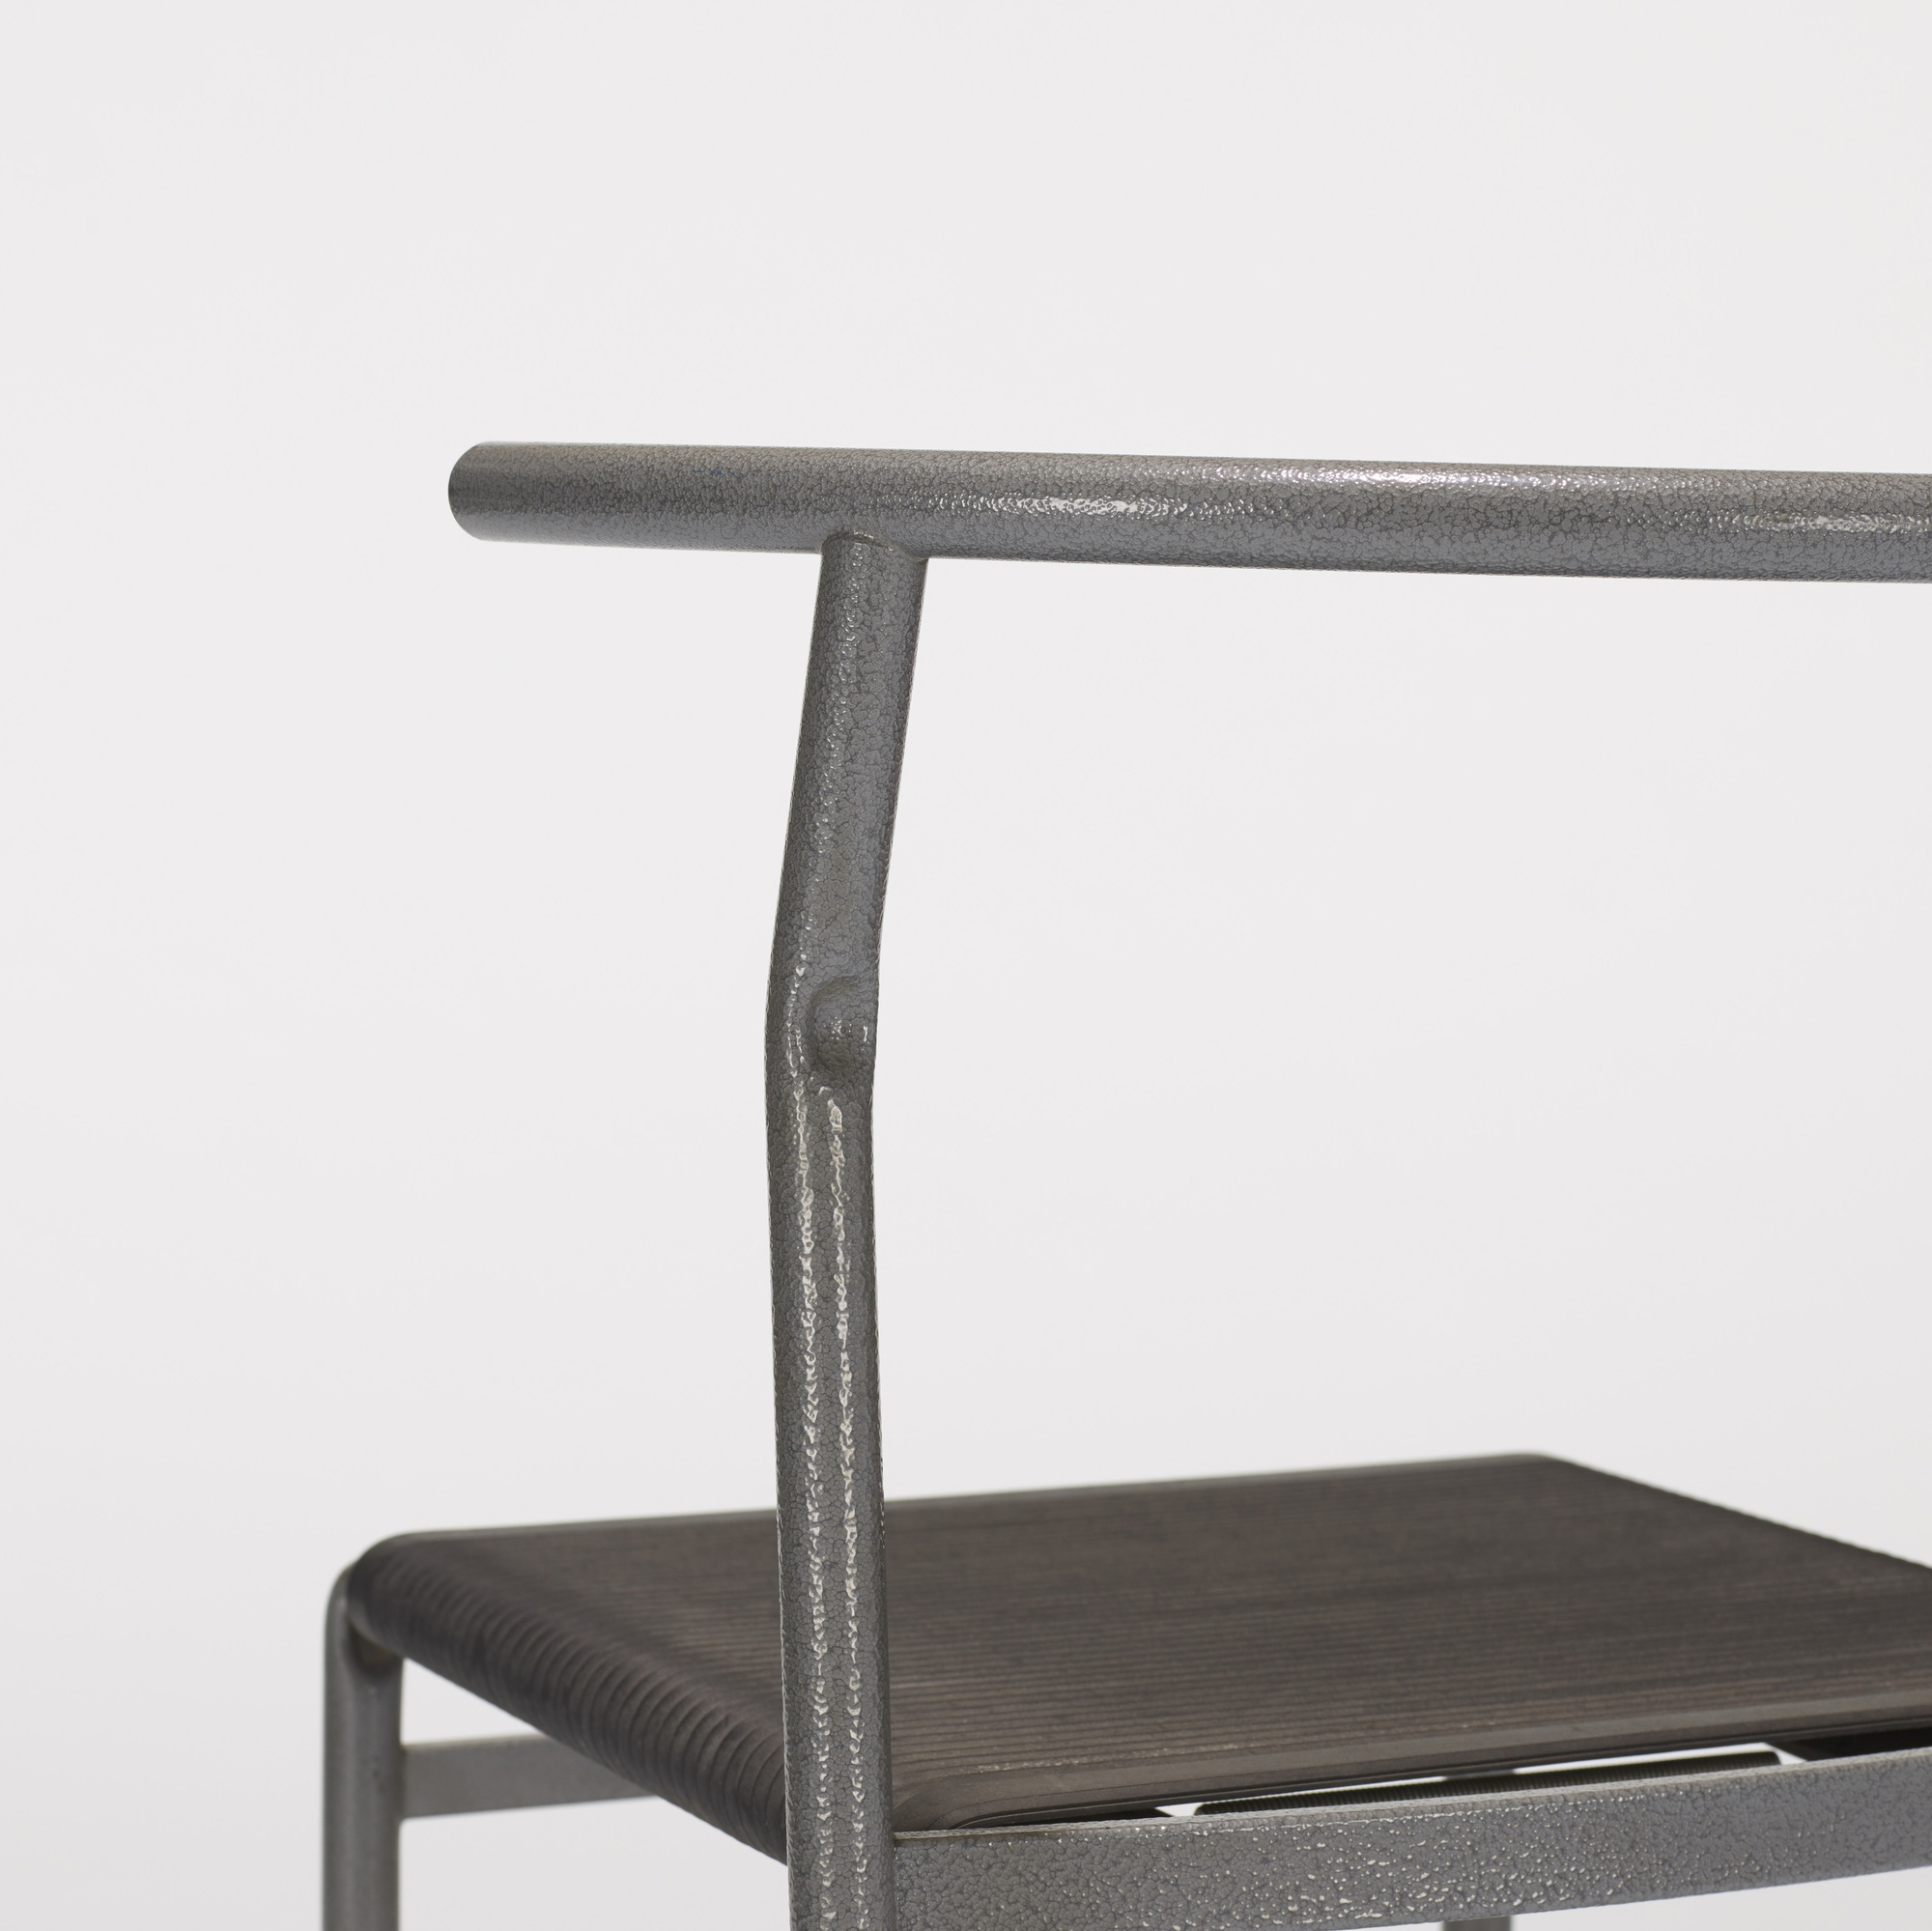 421: Philippe Starck / Café chair (4 of 5)